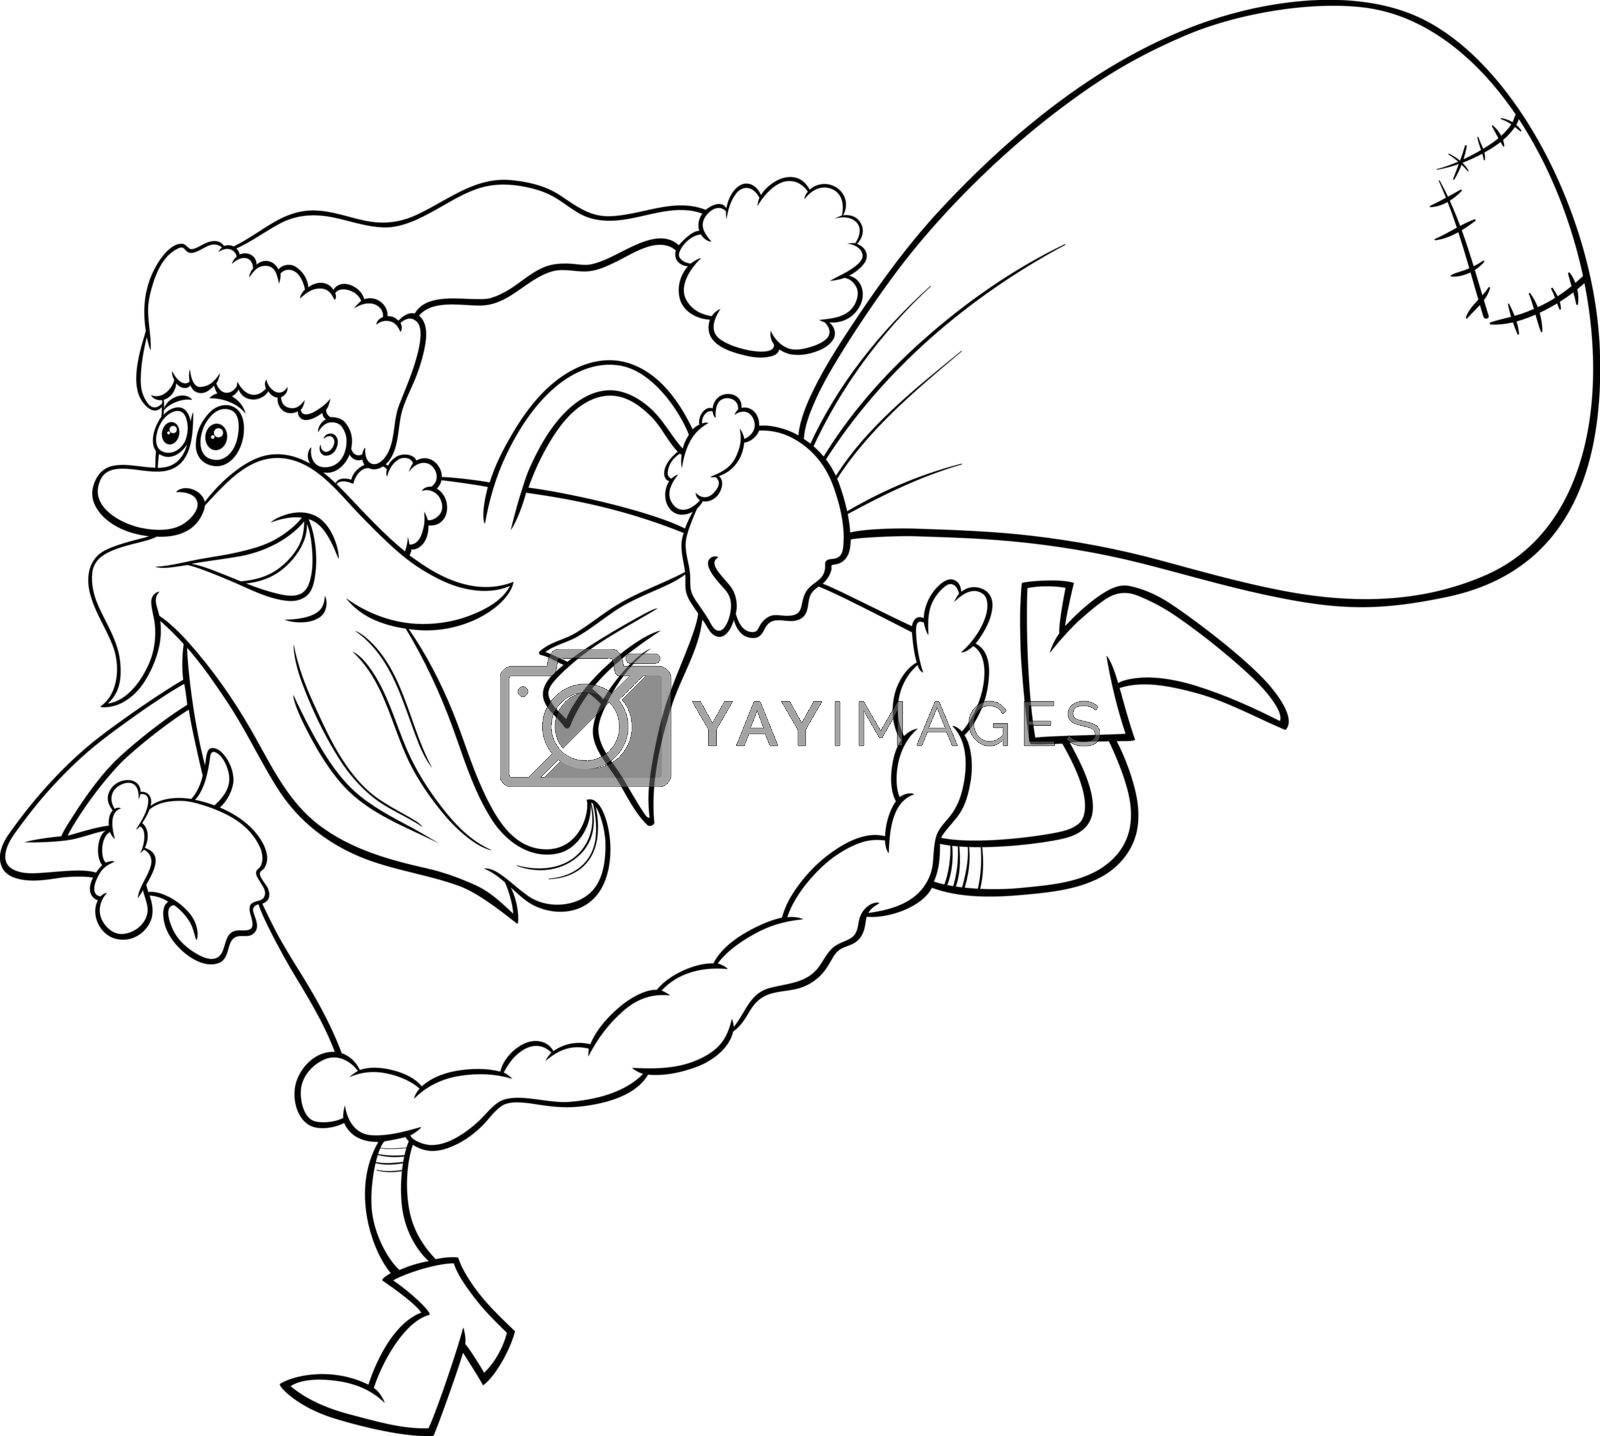 Black and White Cartoon Illustration of Running Santa Claus Christmas Character with Sack of Presents Coloring Book Page